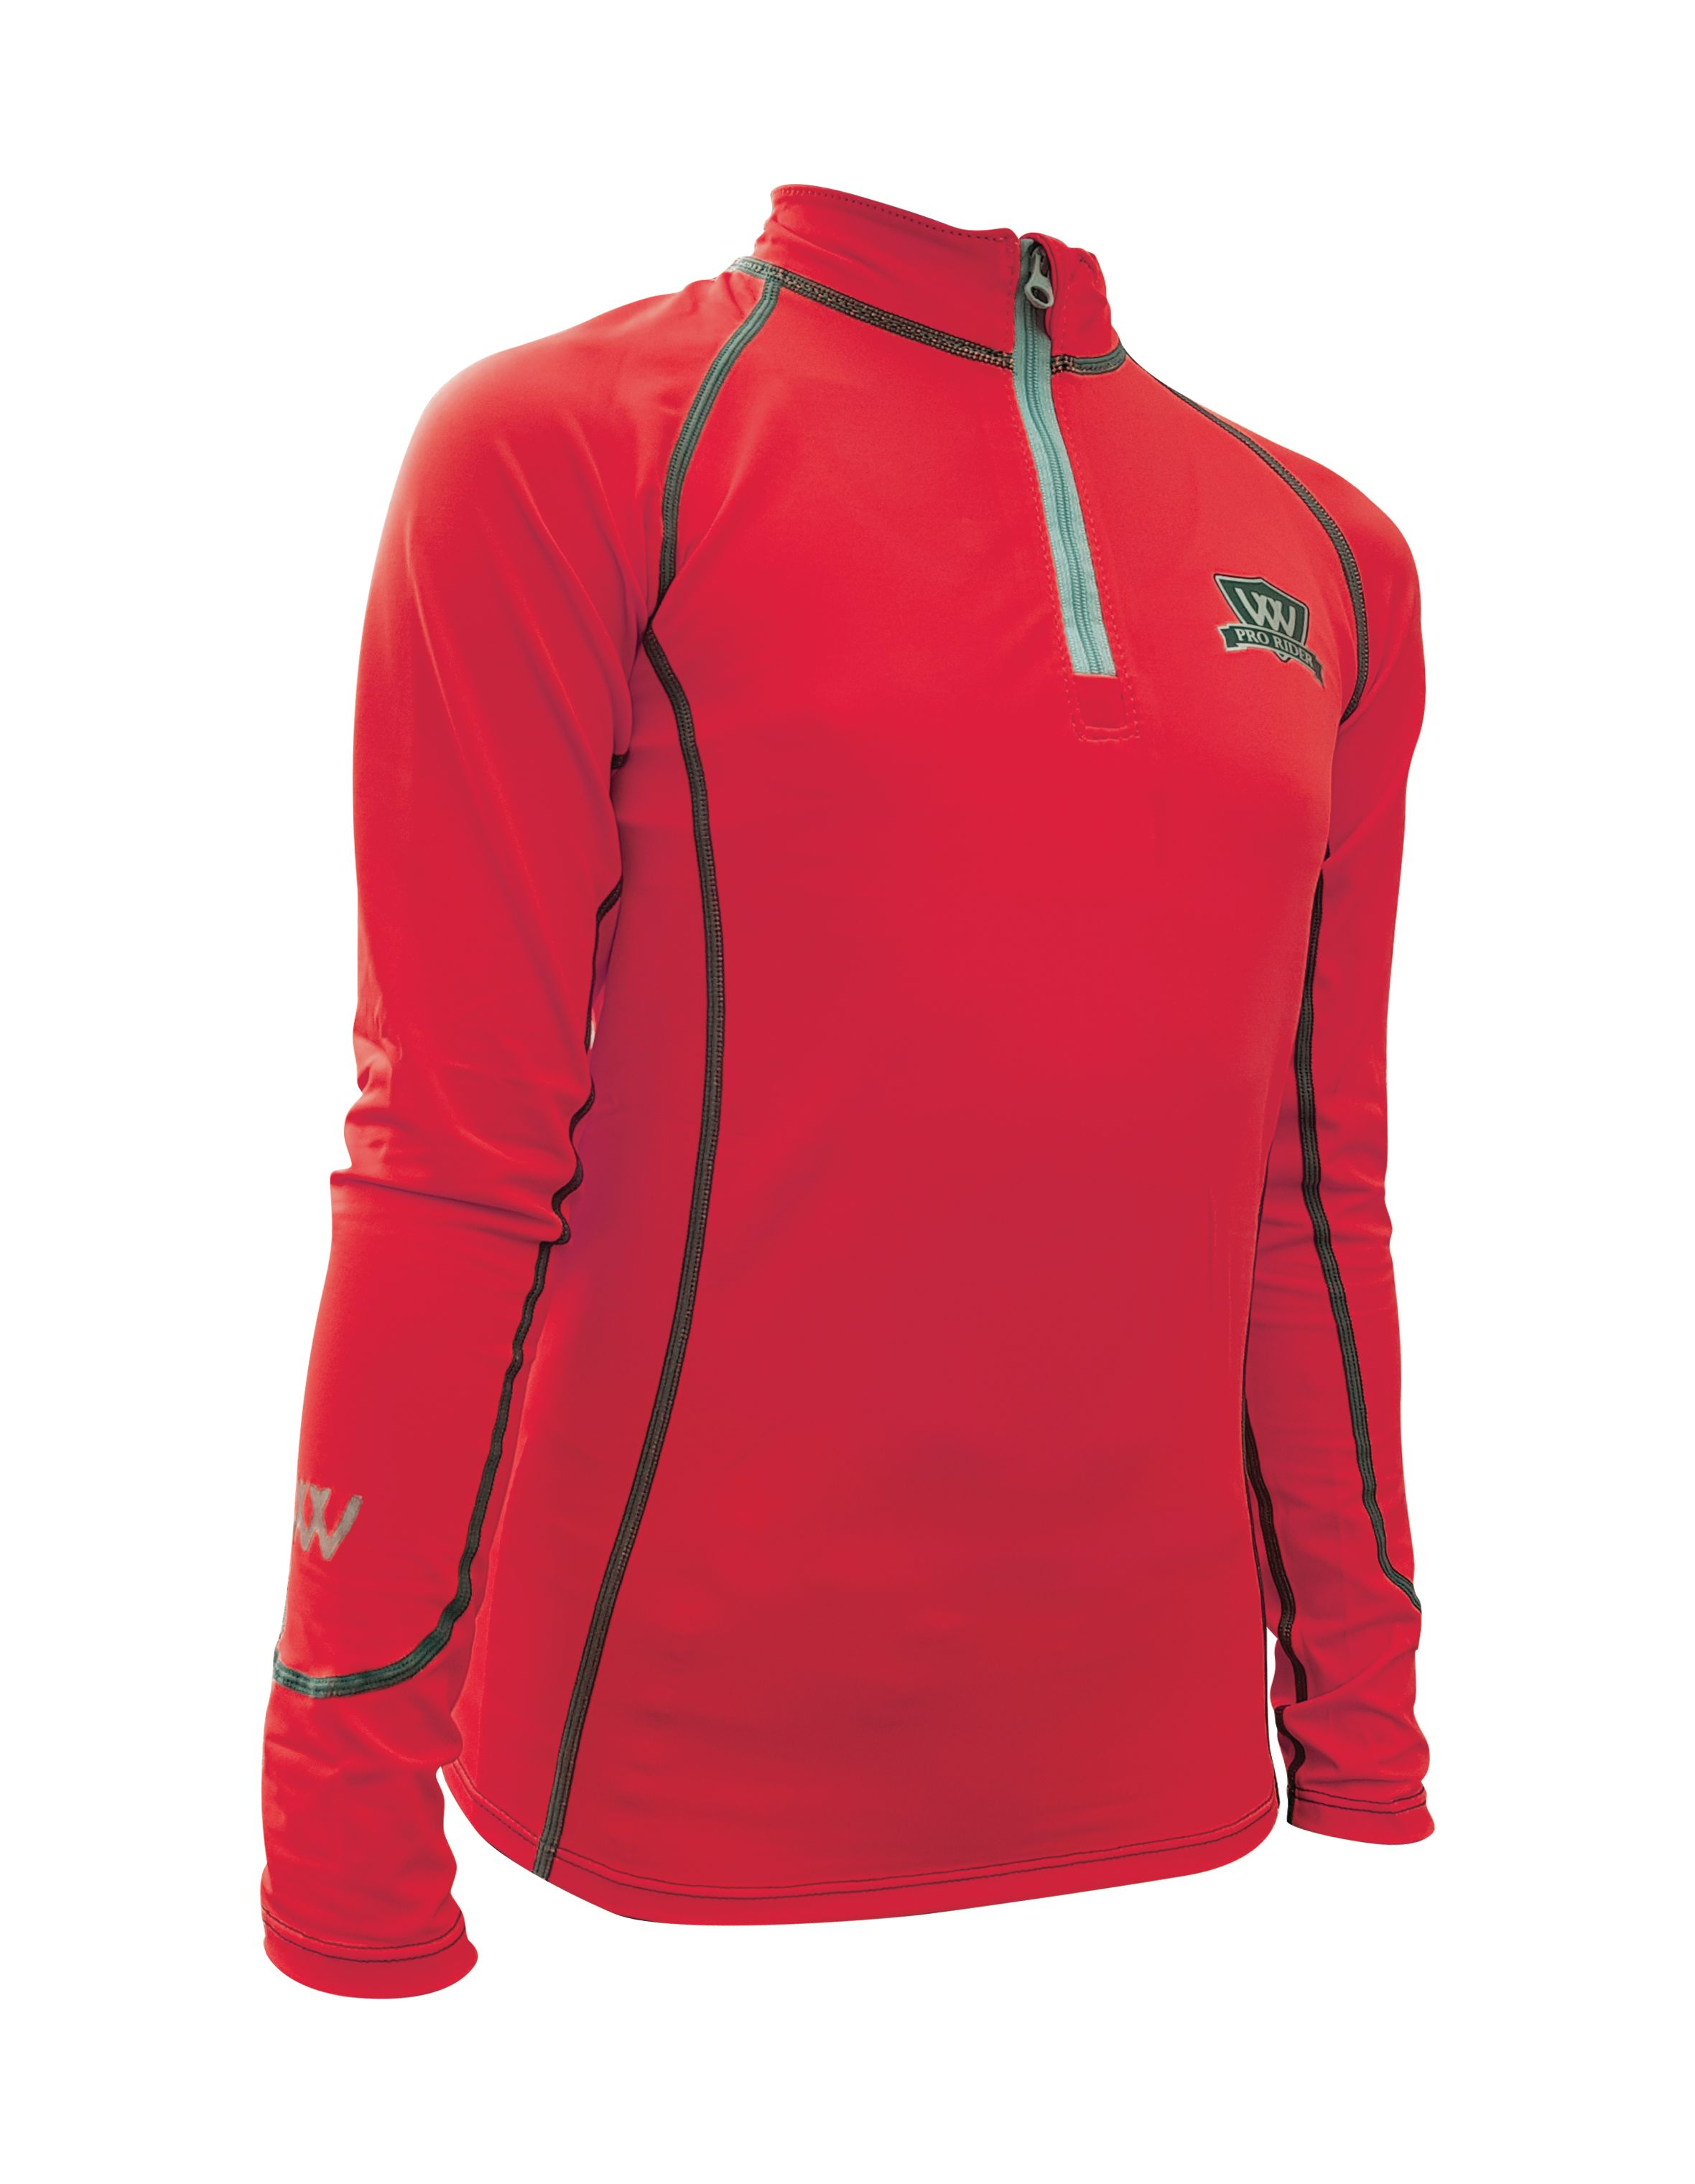 Woof Wear Young Riders Base Layer - Royal Red